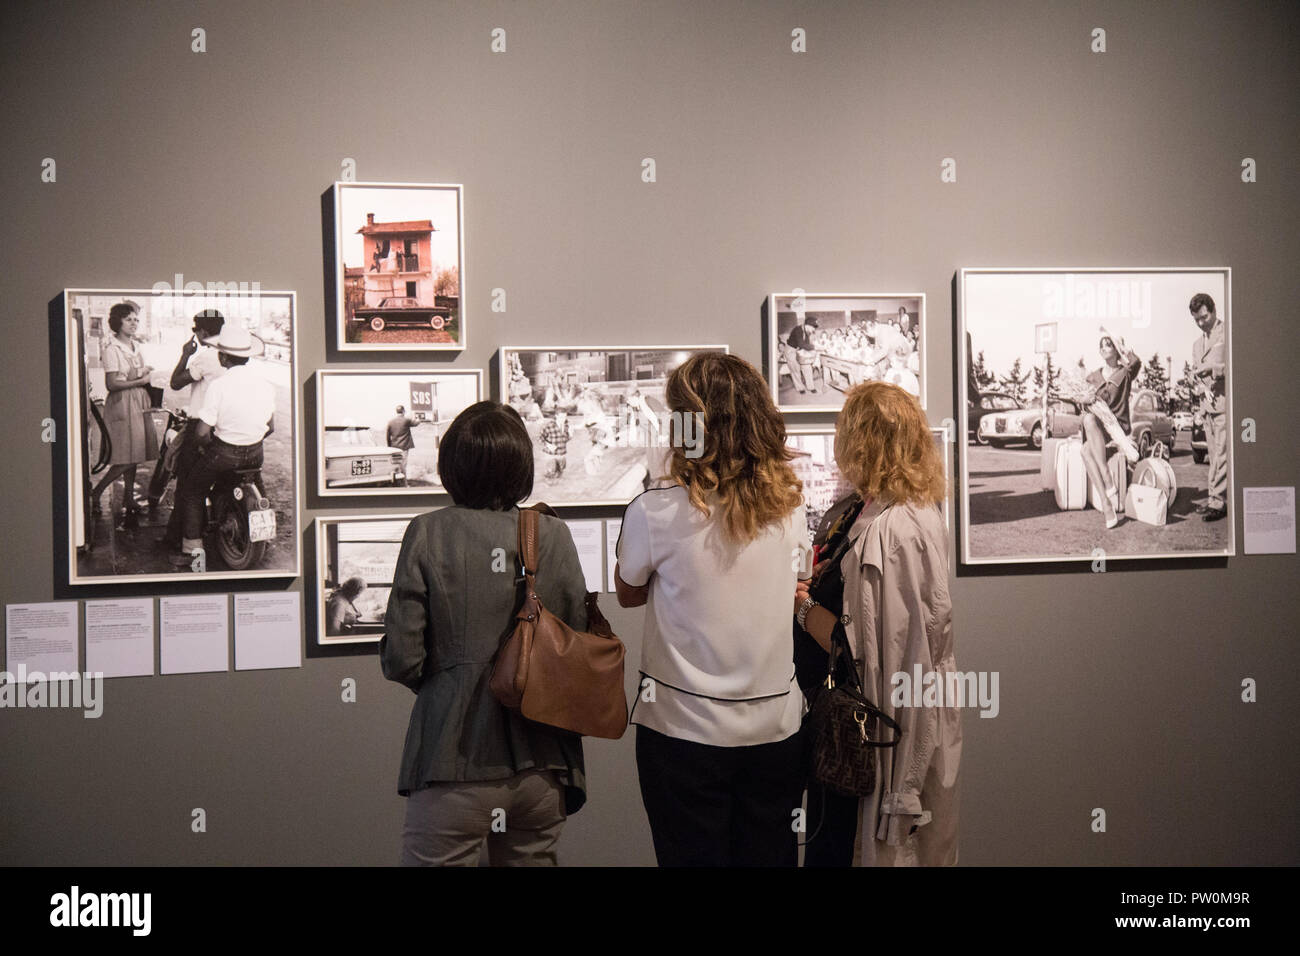 Roma, Italy. 11th Oct, 2018. Inauguration of the exhibition 'Il sorpasso. Quando l'Italia si mise a correre, 1946-1961' at the Museum of Rome in Palazzo Braschi Credit: Matteo Nardone/Pacific Press/Alamy Live News - Stock Image